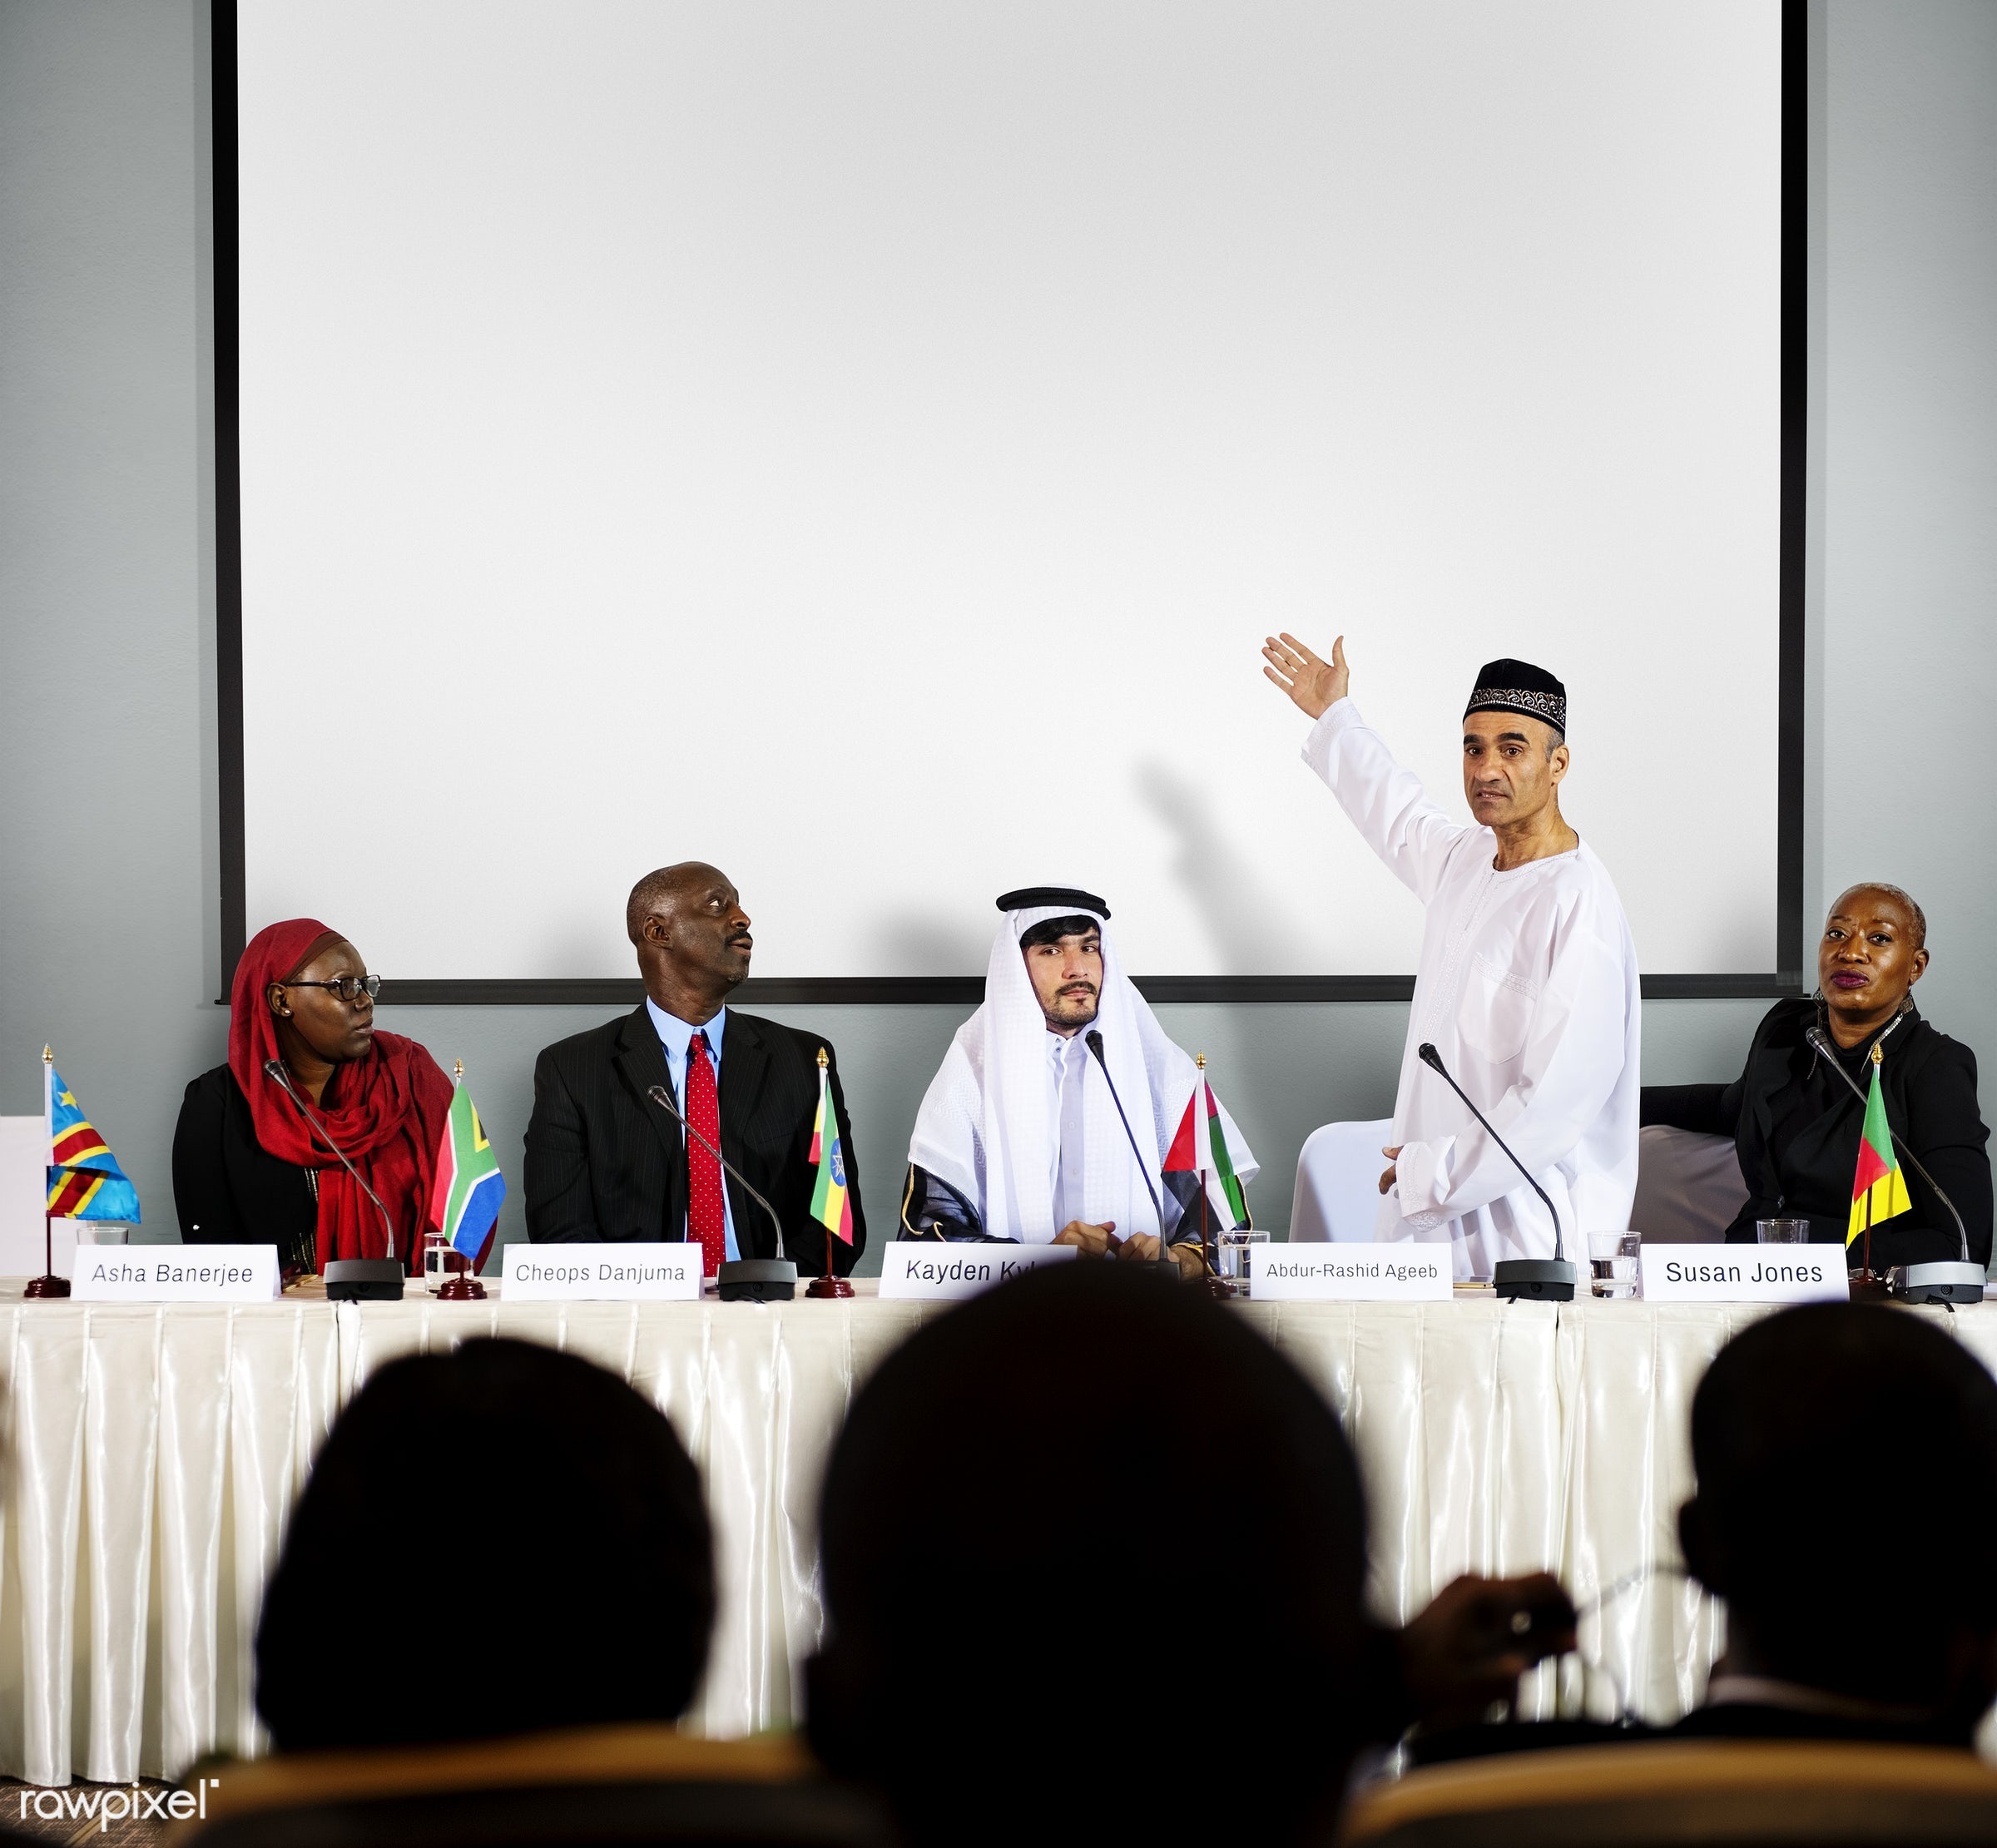 adult, african american, agreement, arabian, asian, audience, business, business conference, caucasian, collaboration,...